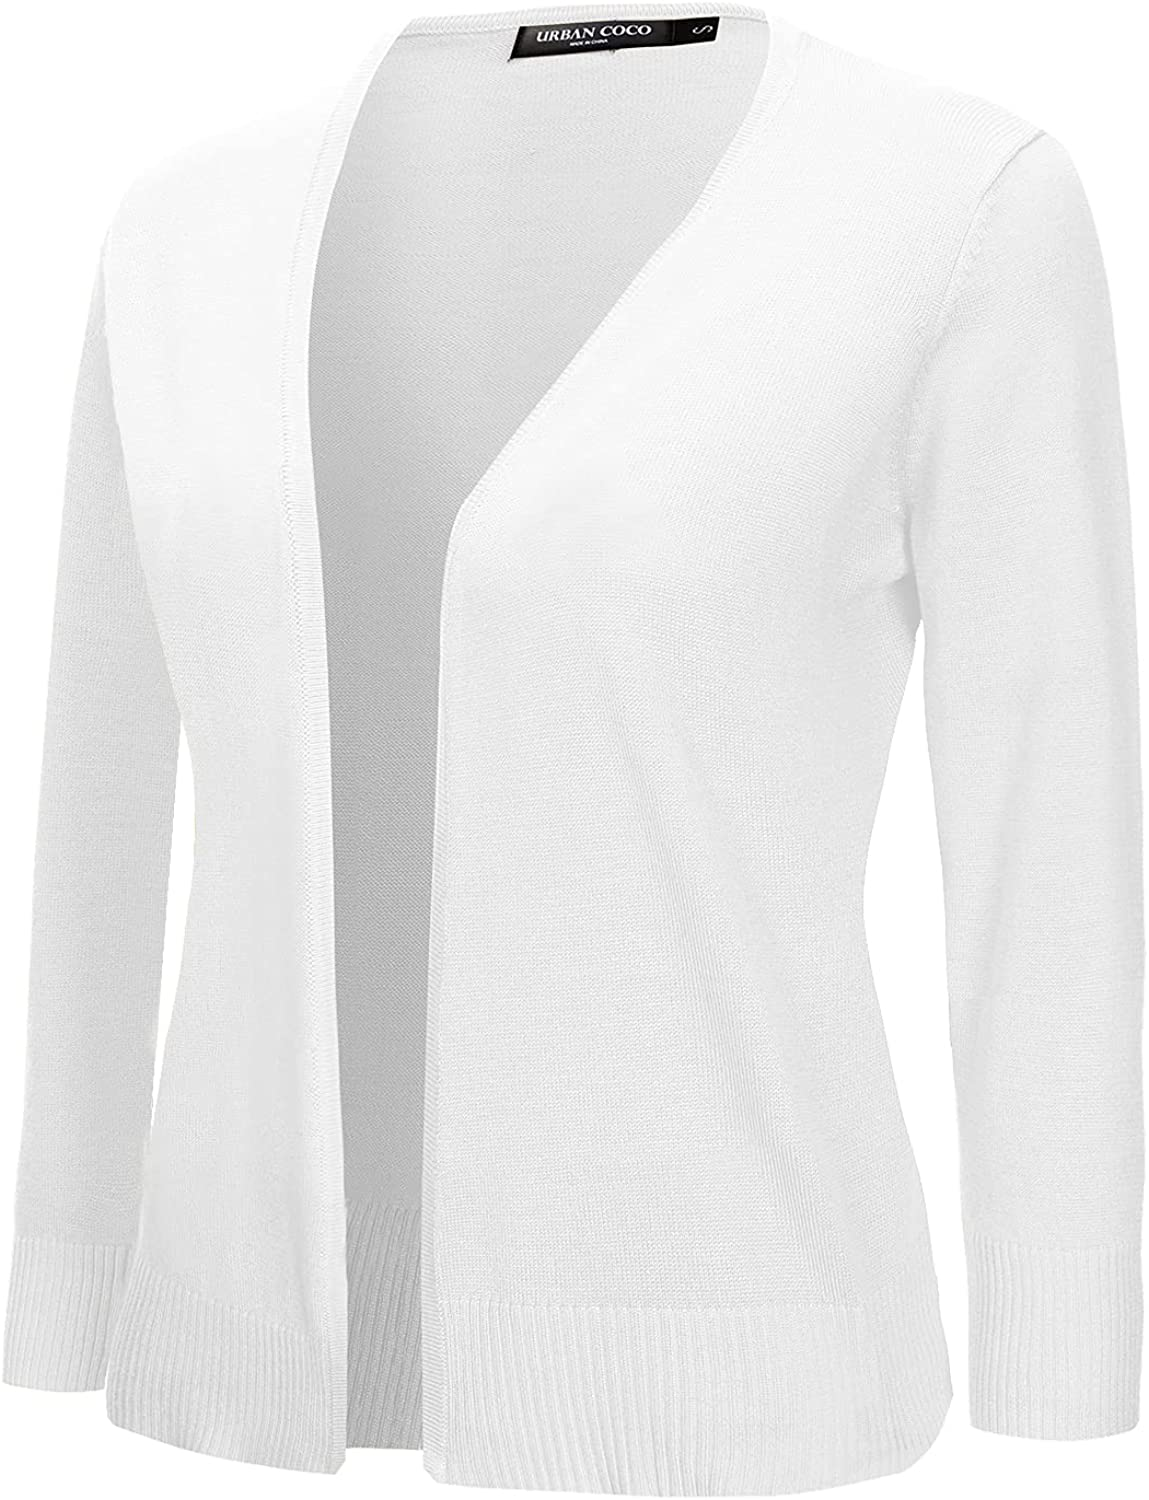 Urban CoCo Women's 3/4 Sleeve Open Front Cropped Sweater Cardigan